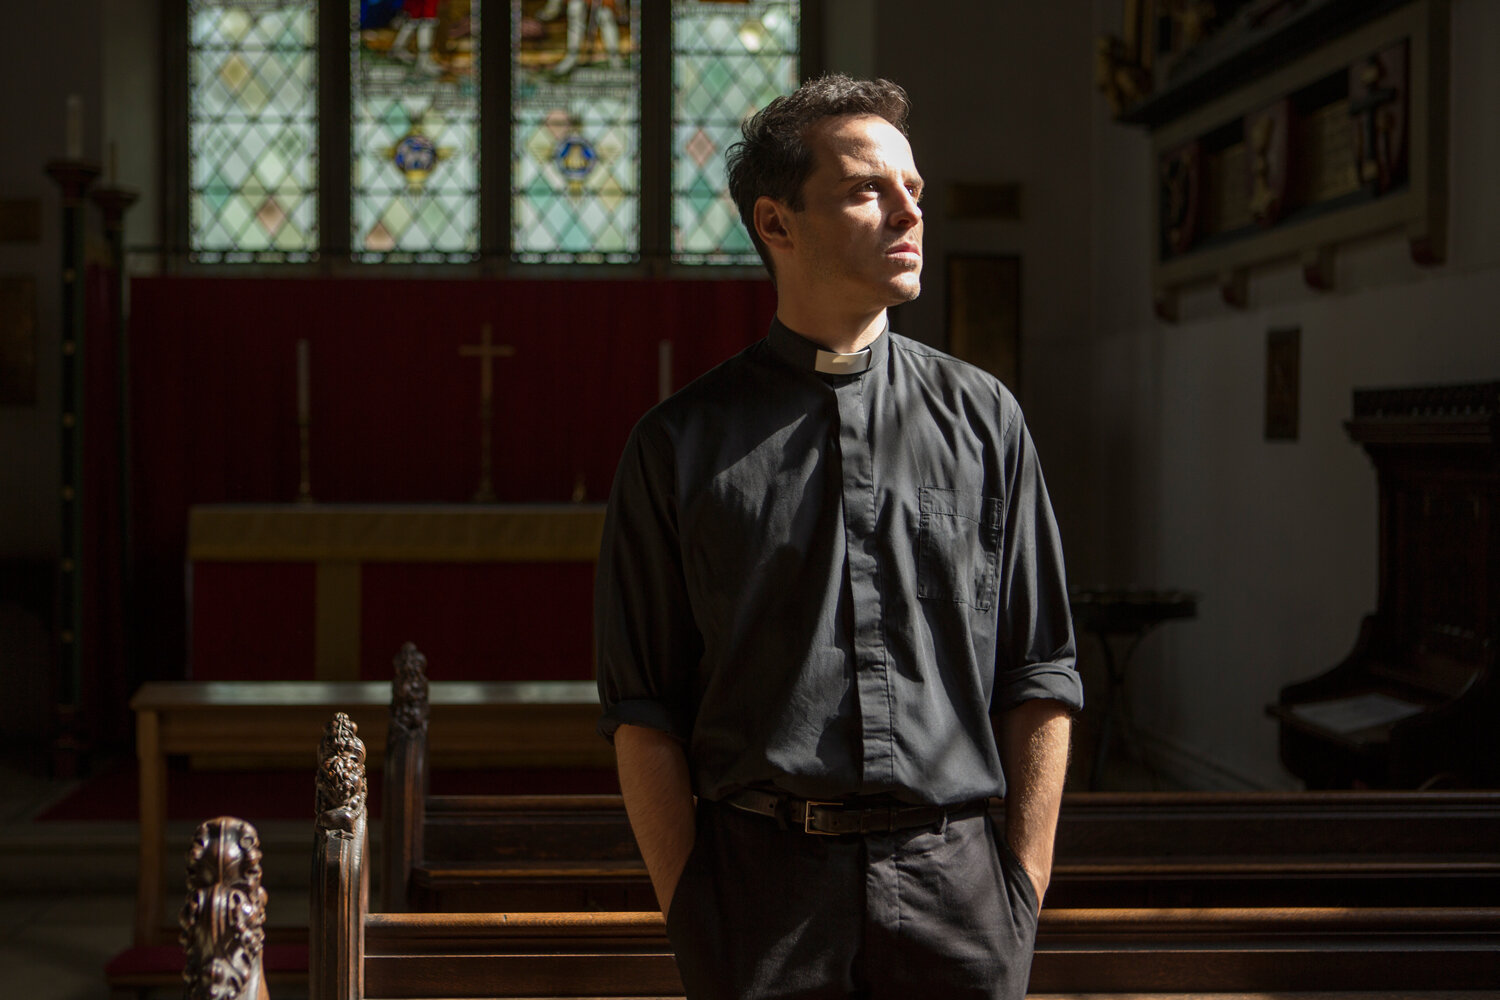 Fleabag hot priest, Andrew Scott, is scheduled to play murderous Talented Mr. Ripley  in an adaptation of  the book  by badass woman author Patricia Highsmith.